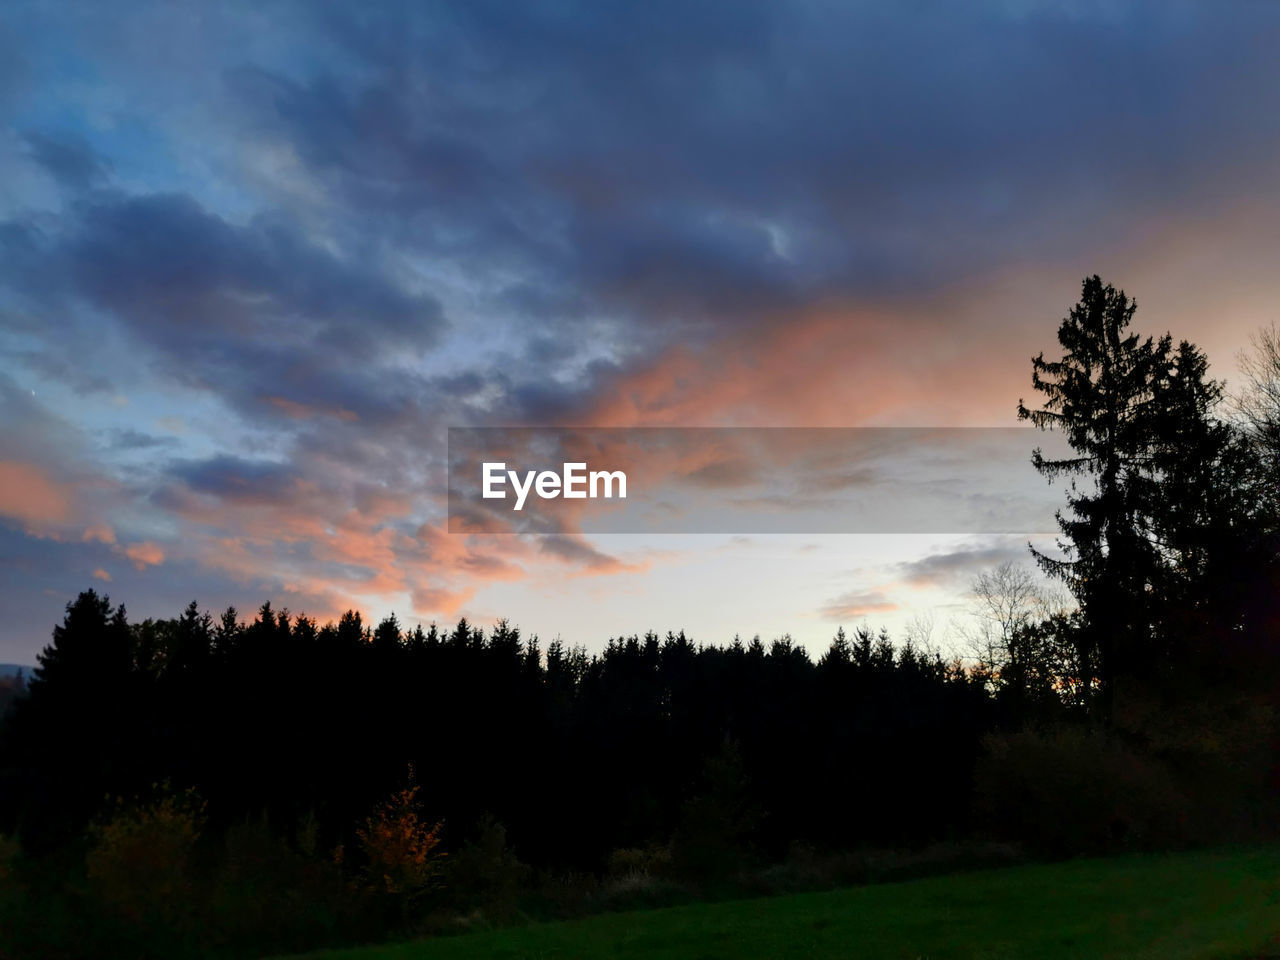 tree, sky, cloud - sky, beauty in nature, tranquil scene, sunset, scenics - nature, tranquility, plant, non-urban scene, no people, silhouette, land, nature, environment, landscape, orange color, growth, idyllic, field, outdoors, coniferous tree